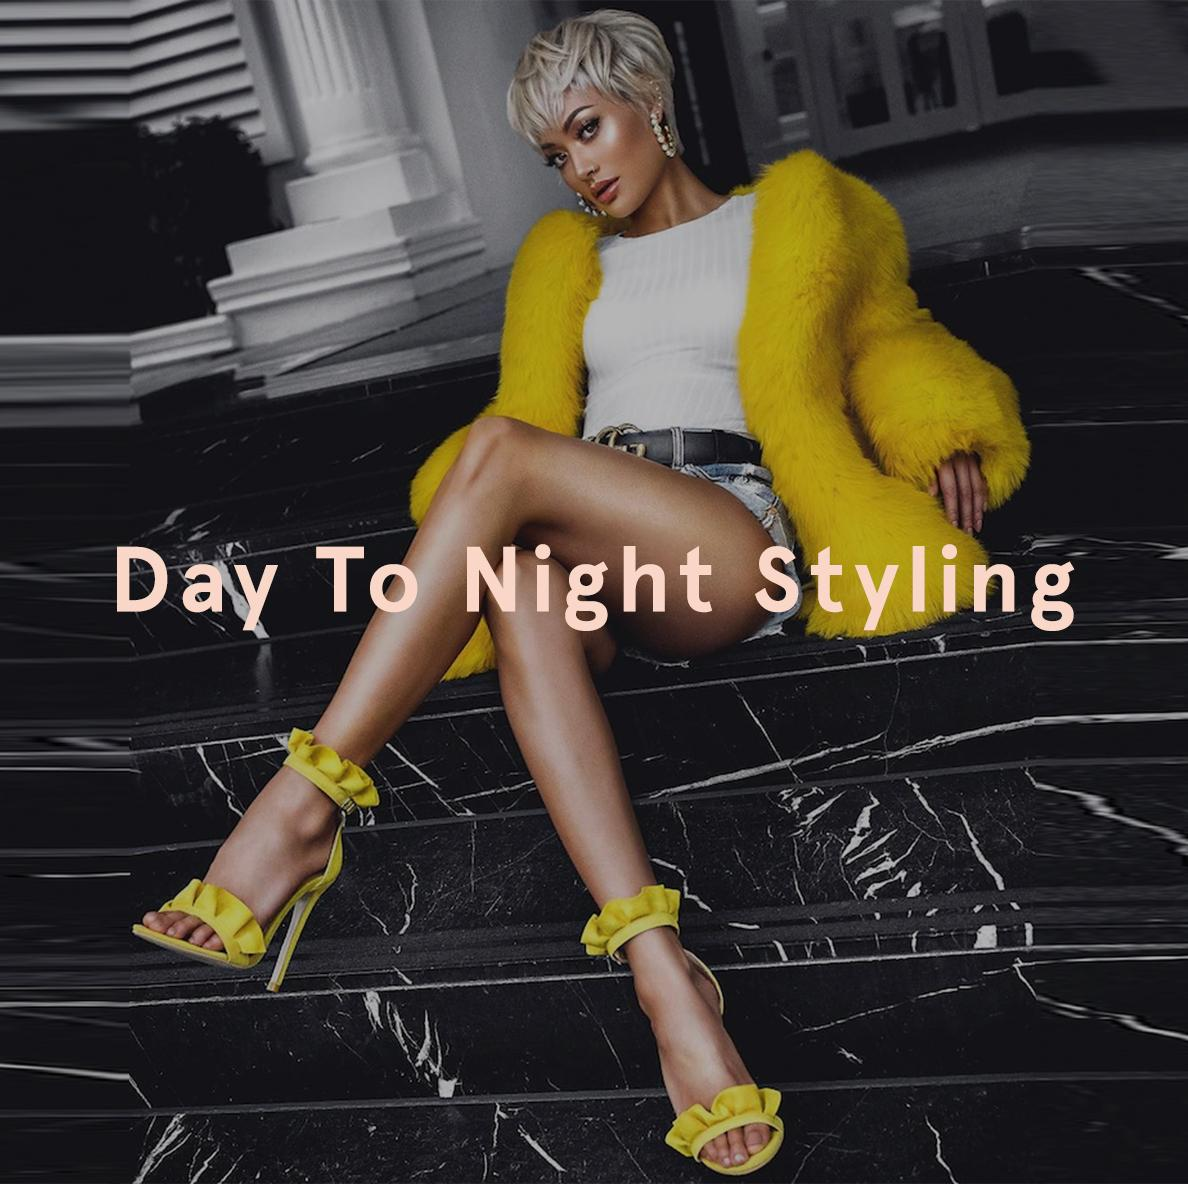 Day To Night Styling